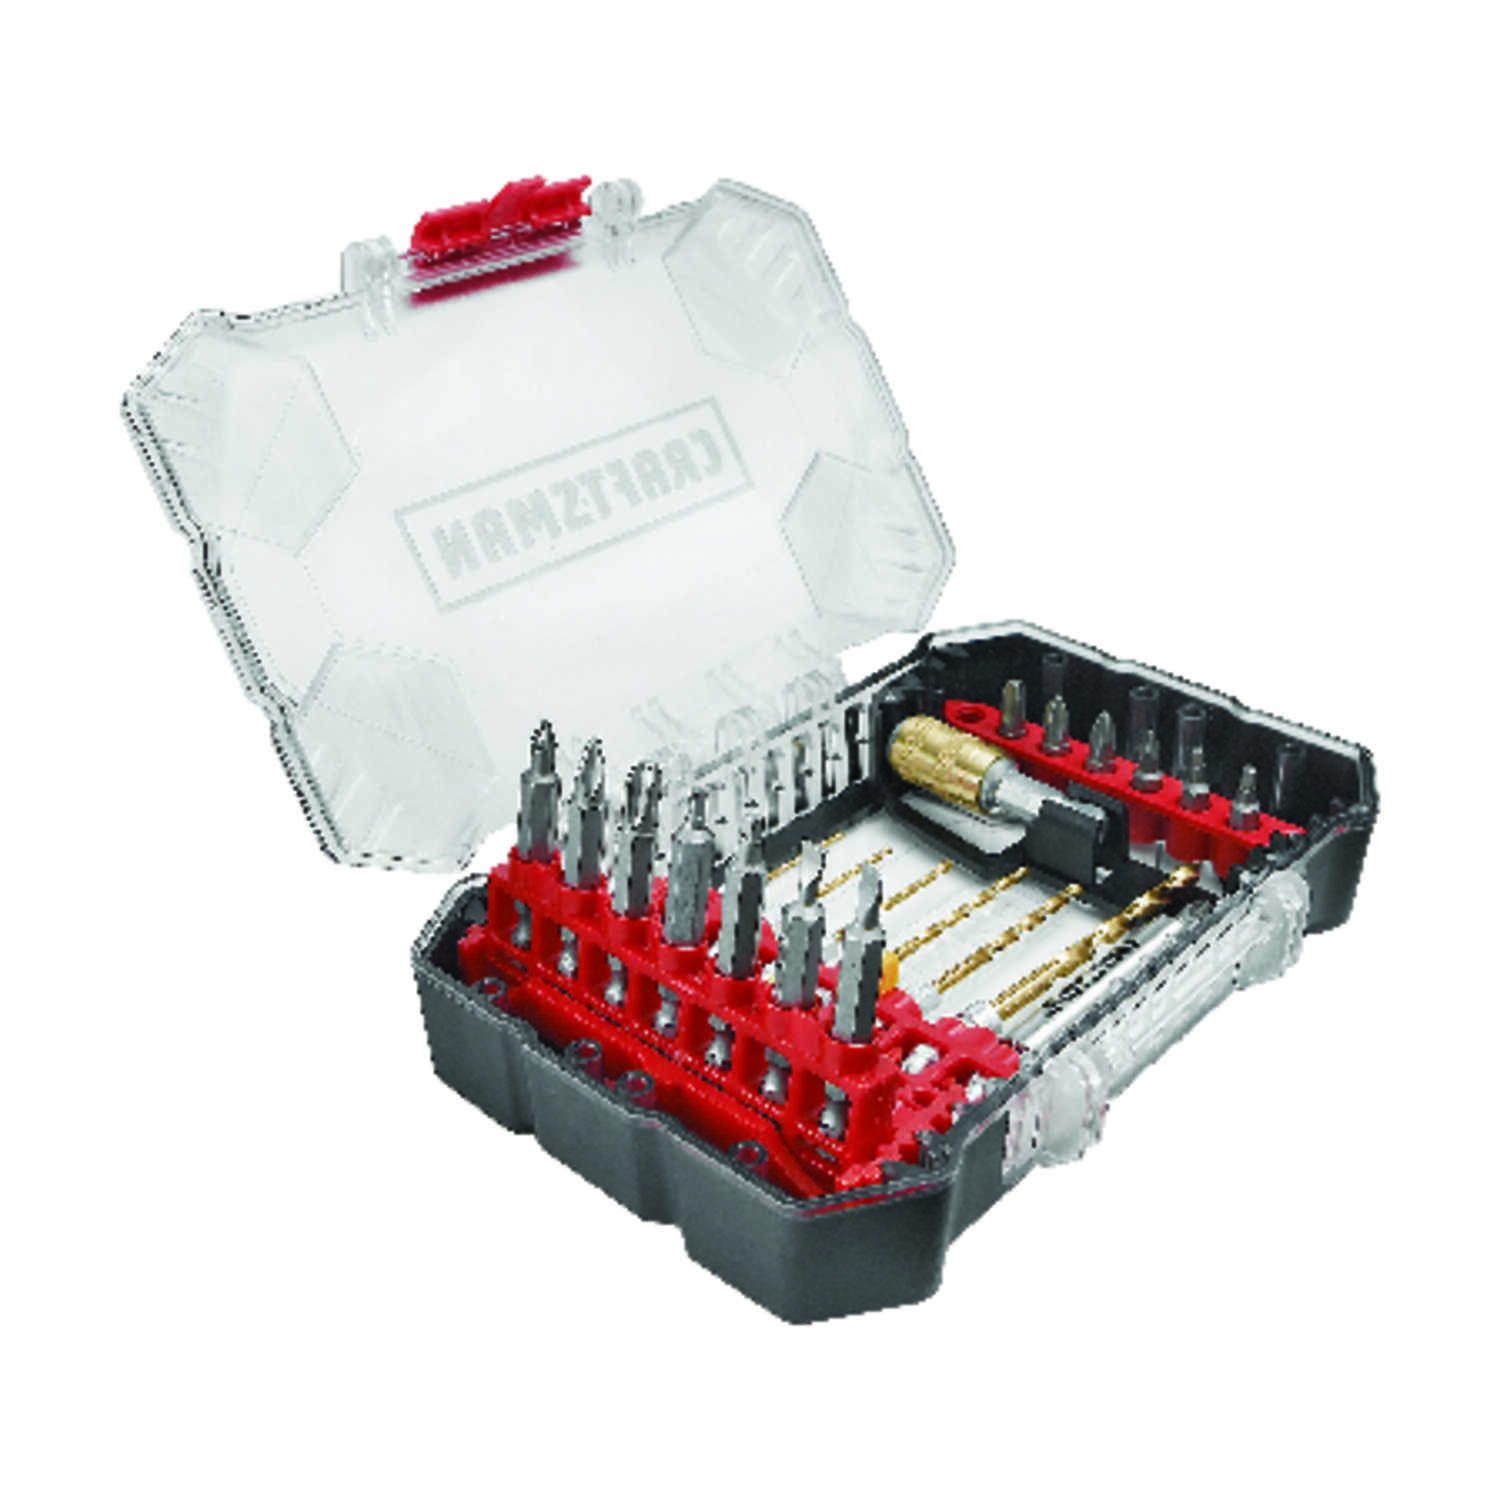 Craftsman  Multi Size  Dia. x 2 inch  L High Speed Steel  Drill and Driver Bit Set  Hex Shank  22 pc